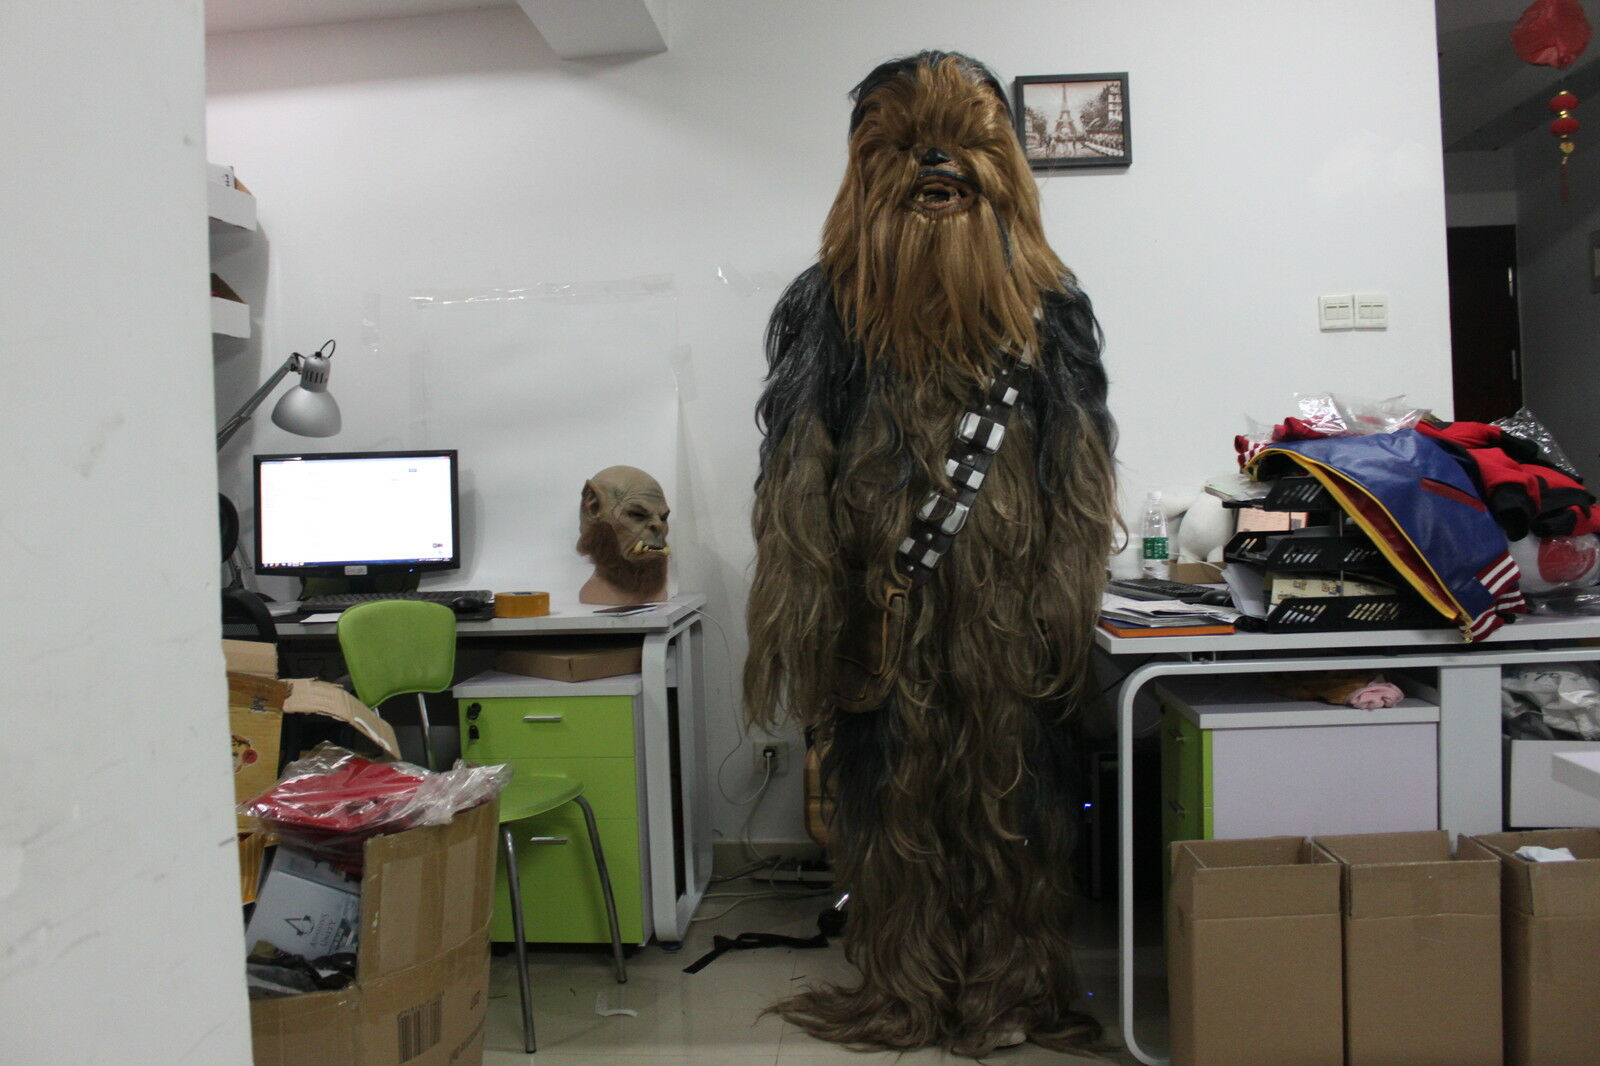 Picture 1 of 12 ... & Halloween RARE Star Wars Chewbacca Fancy Dress Costume Adult Xmas ...